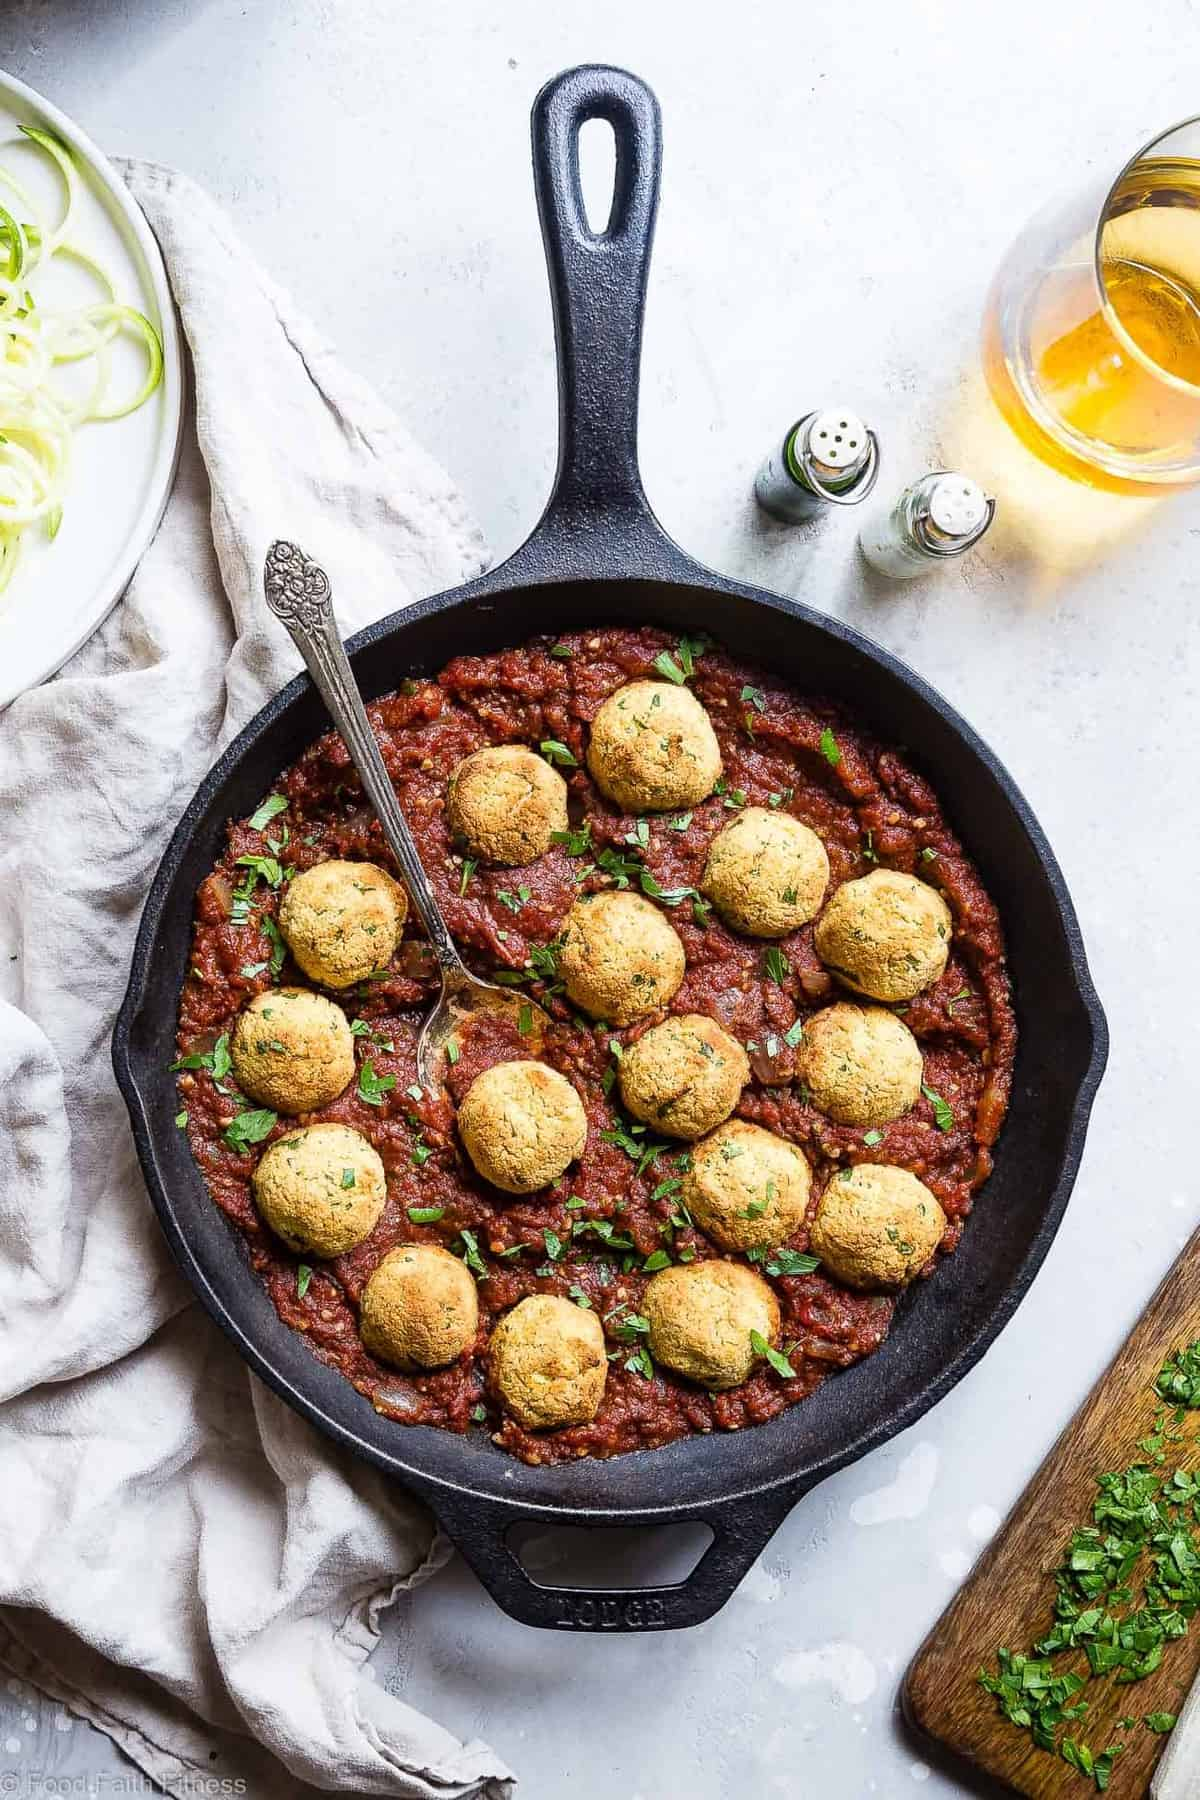 Gluten Free Vegan Chickpea Meatballs with Tomato Sauce -These meatless, gluten free meatballs are SO crispy, they will blow your mind! Serve them with an easy tomato sauce for a tasty, healthy dinner that's packed with plant protein and fiber! | #Foodfaithfitness | #Vegan #Glutenfree #Healthy #Vegetarian #Dairyfree